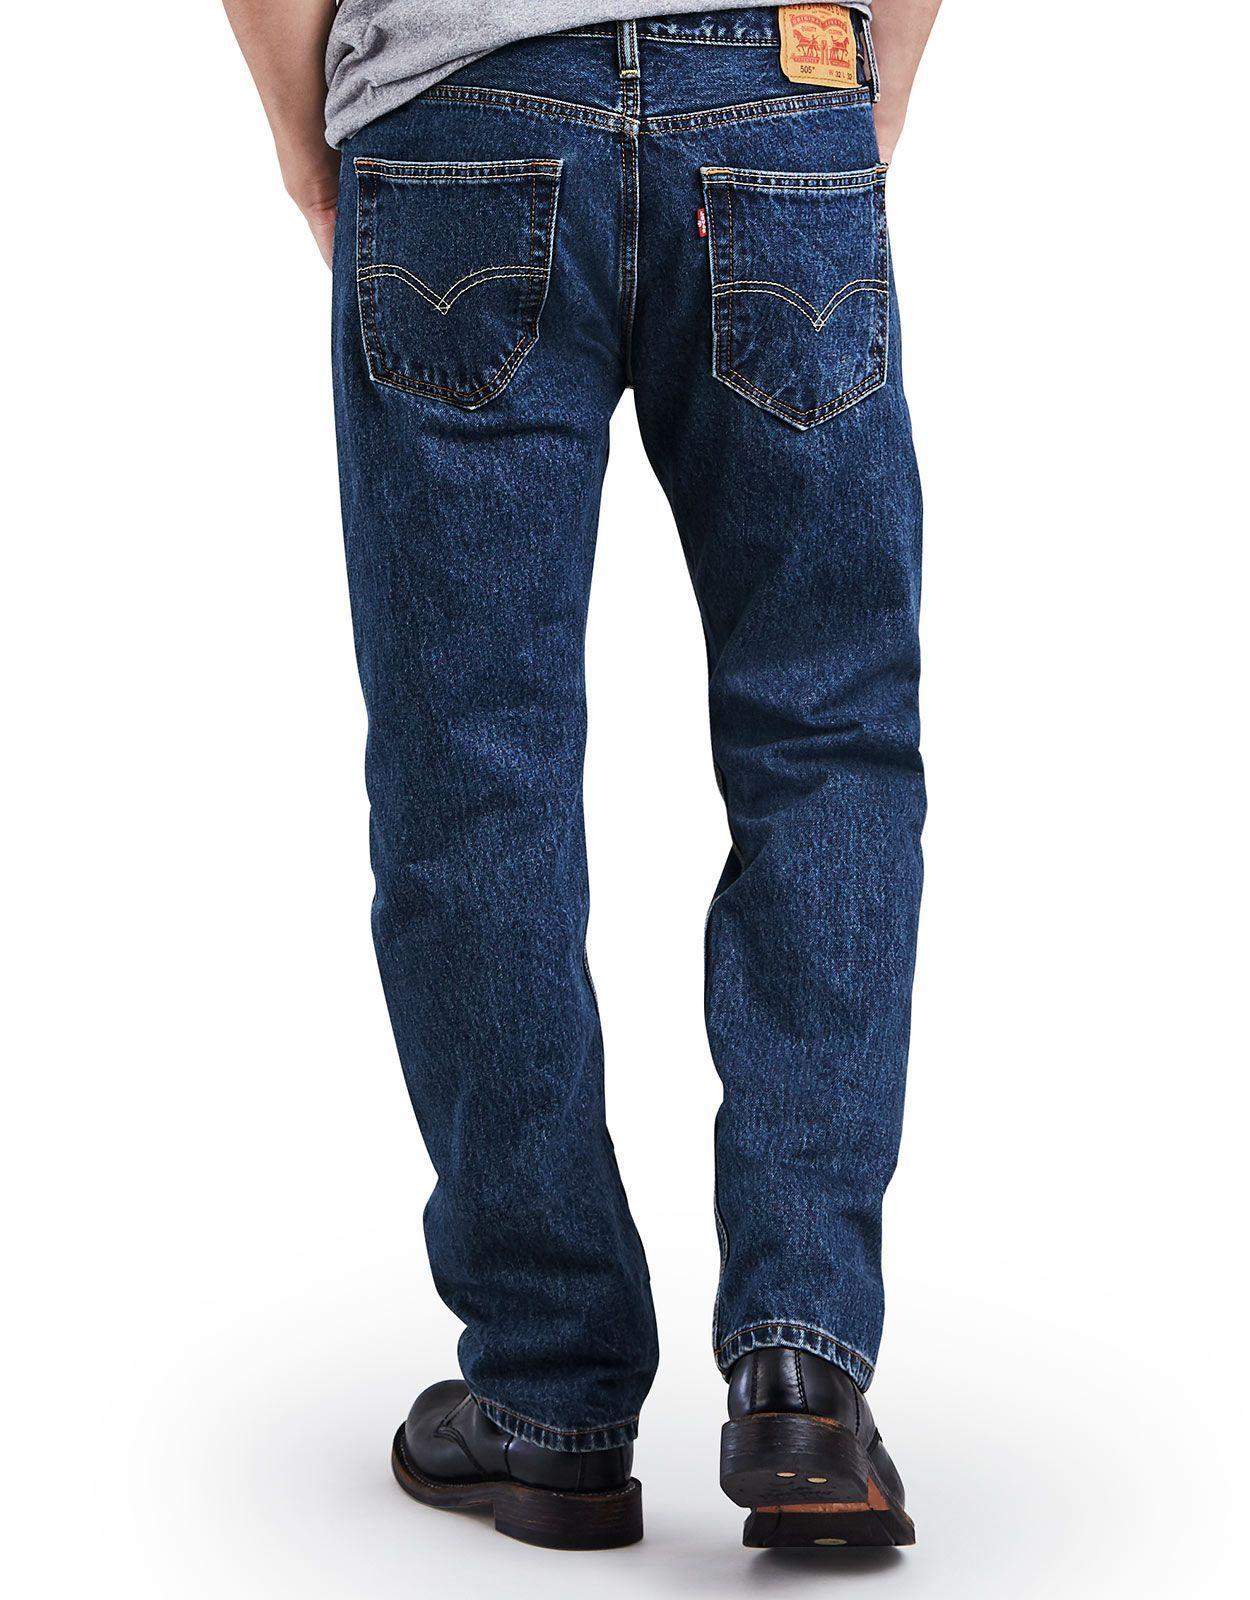 Levi's Men's 505 Regular Mid Rise Regular Fit Straight Leg Jeans - Dark Stonewash